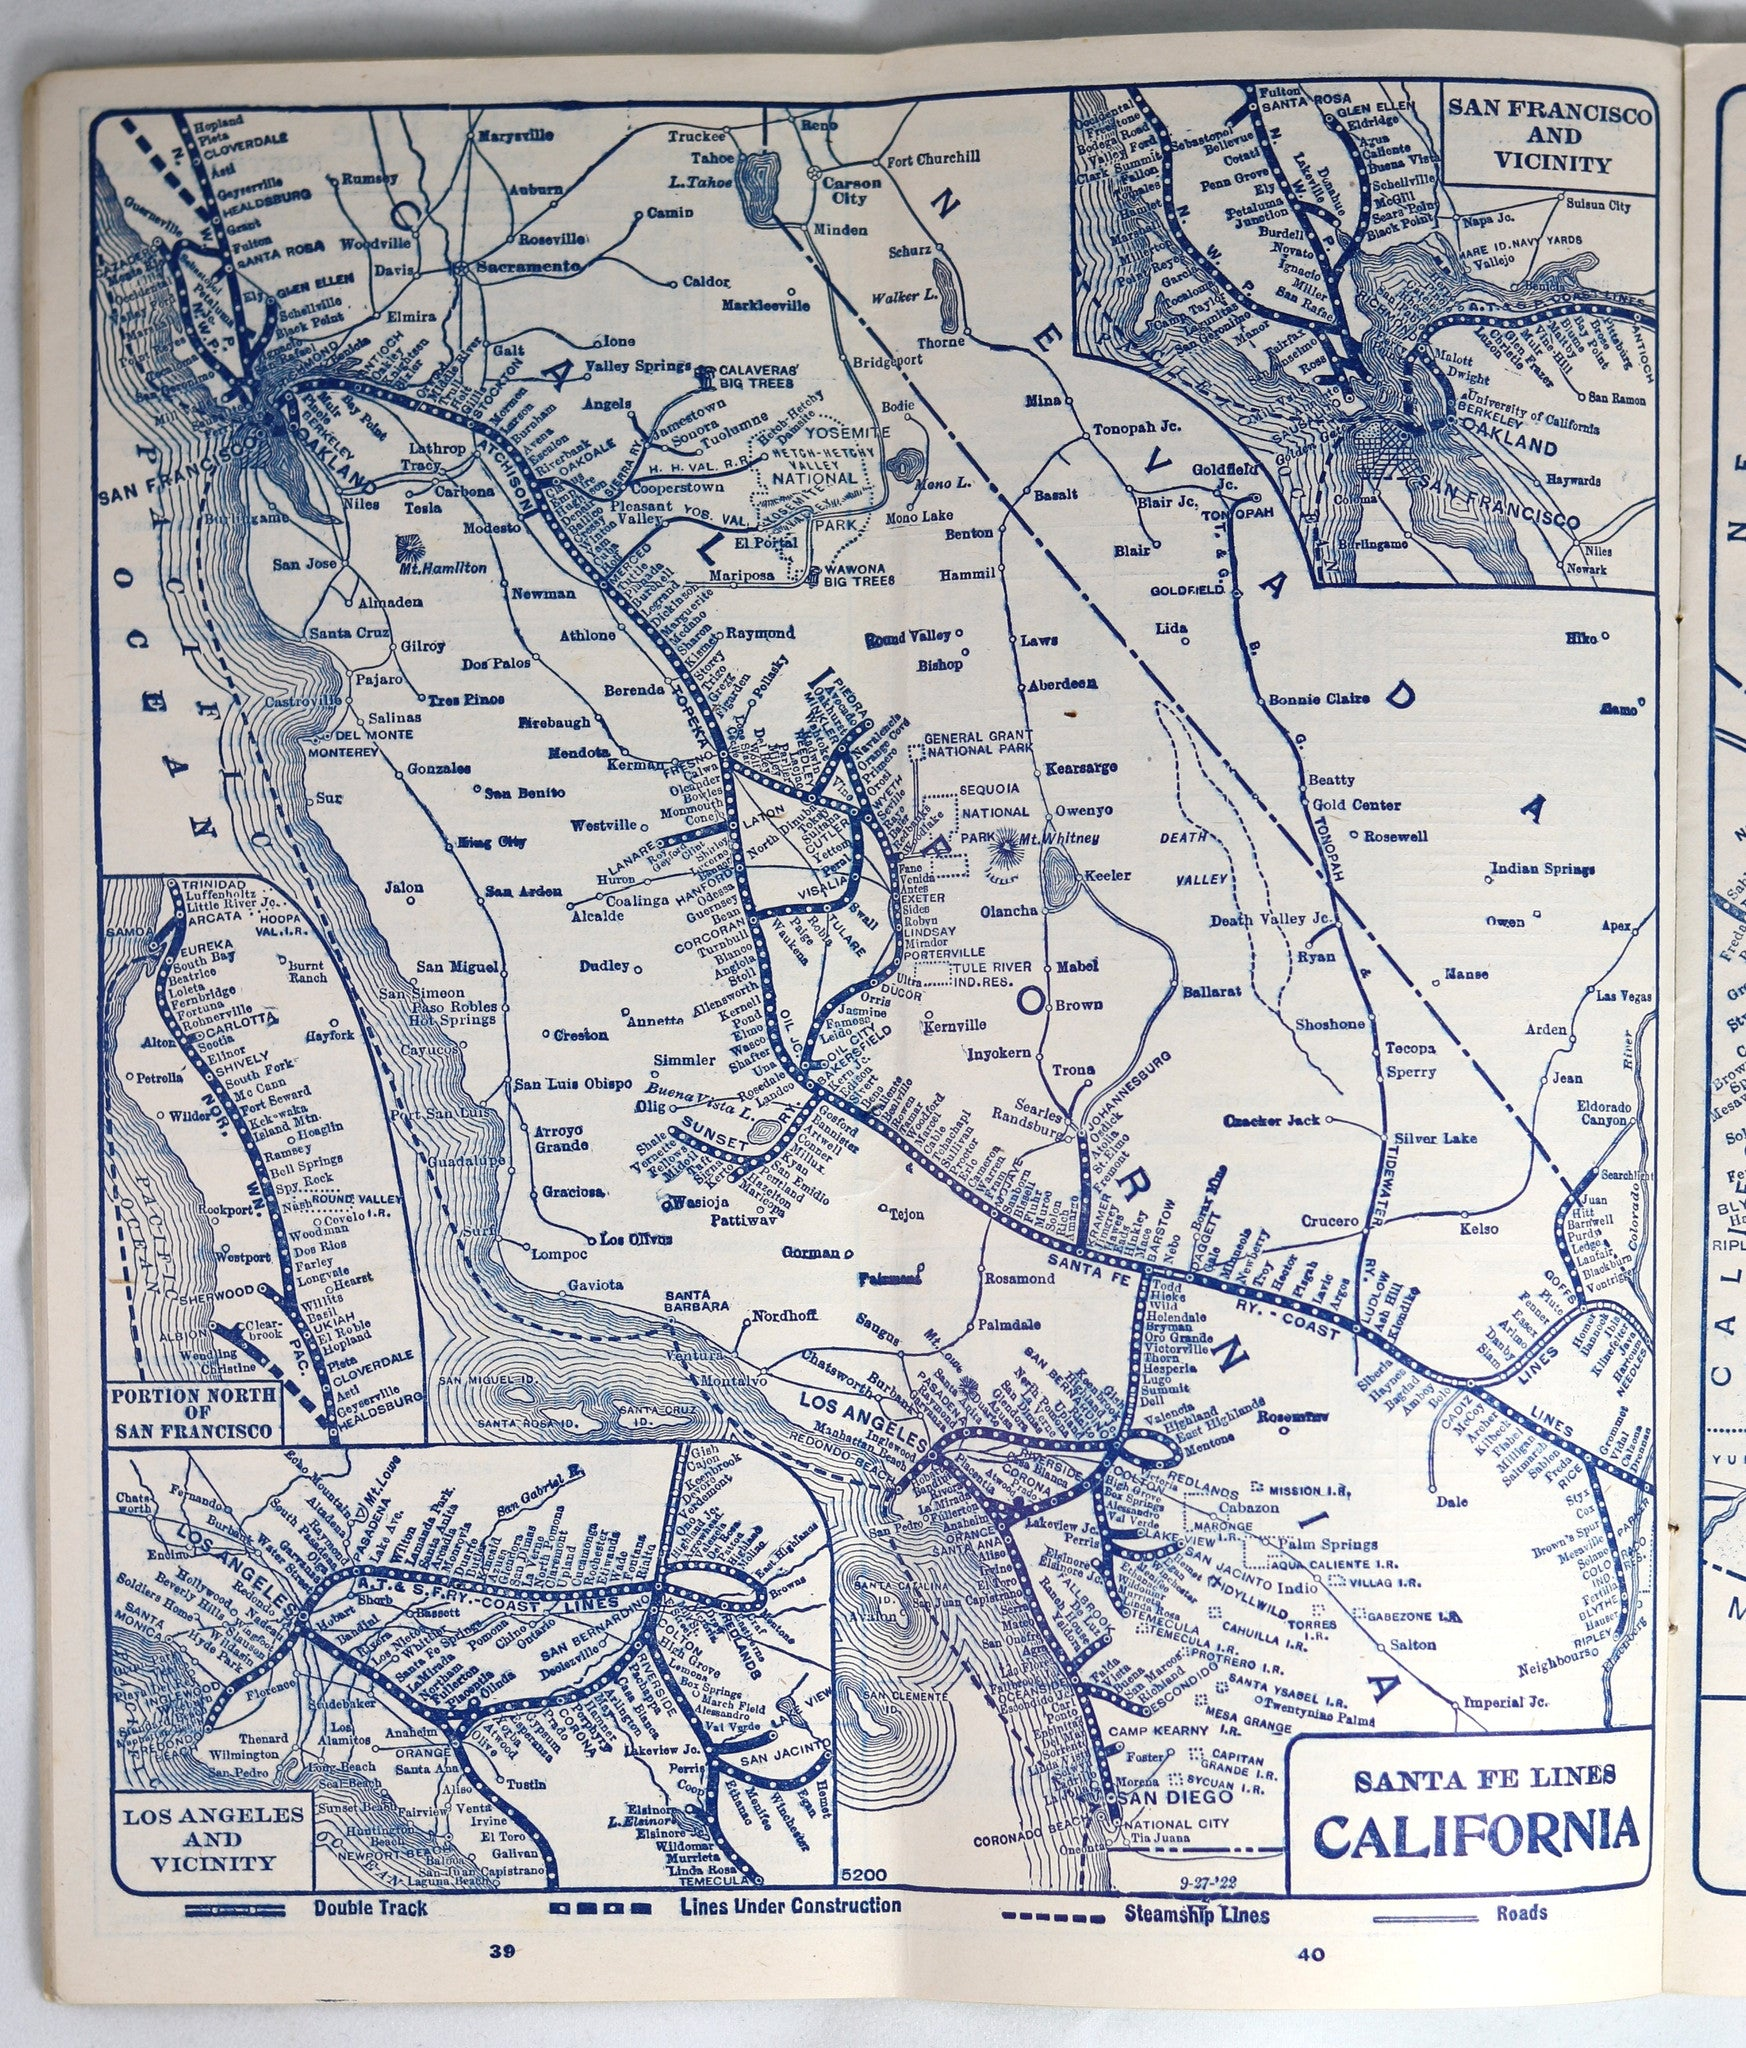 The AtchisonTopeka Santa Fe Railway System Time Tables - Atchinson topeka and santa ferailroad on the us map